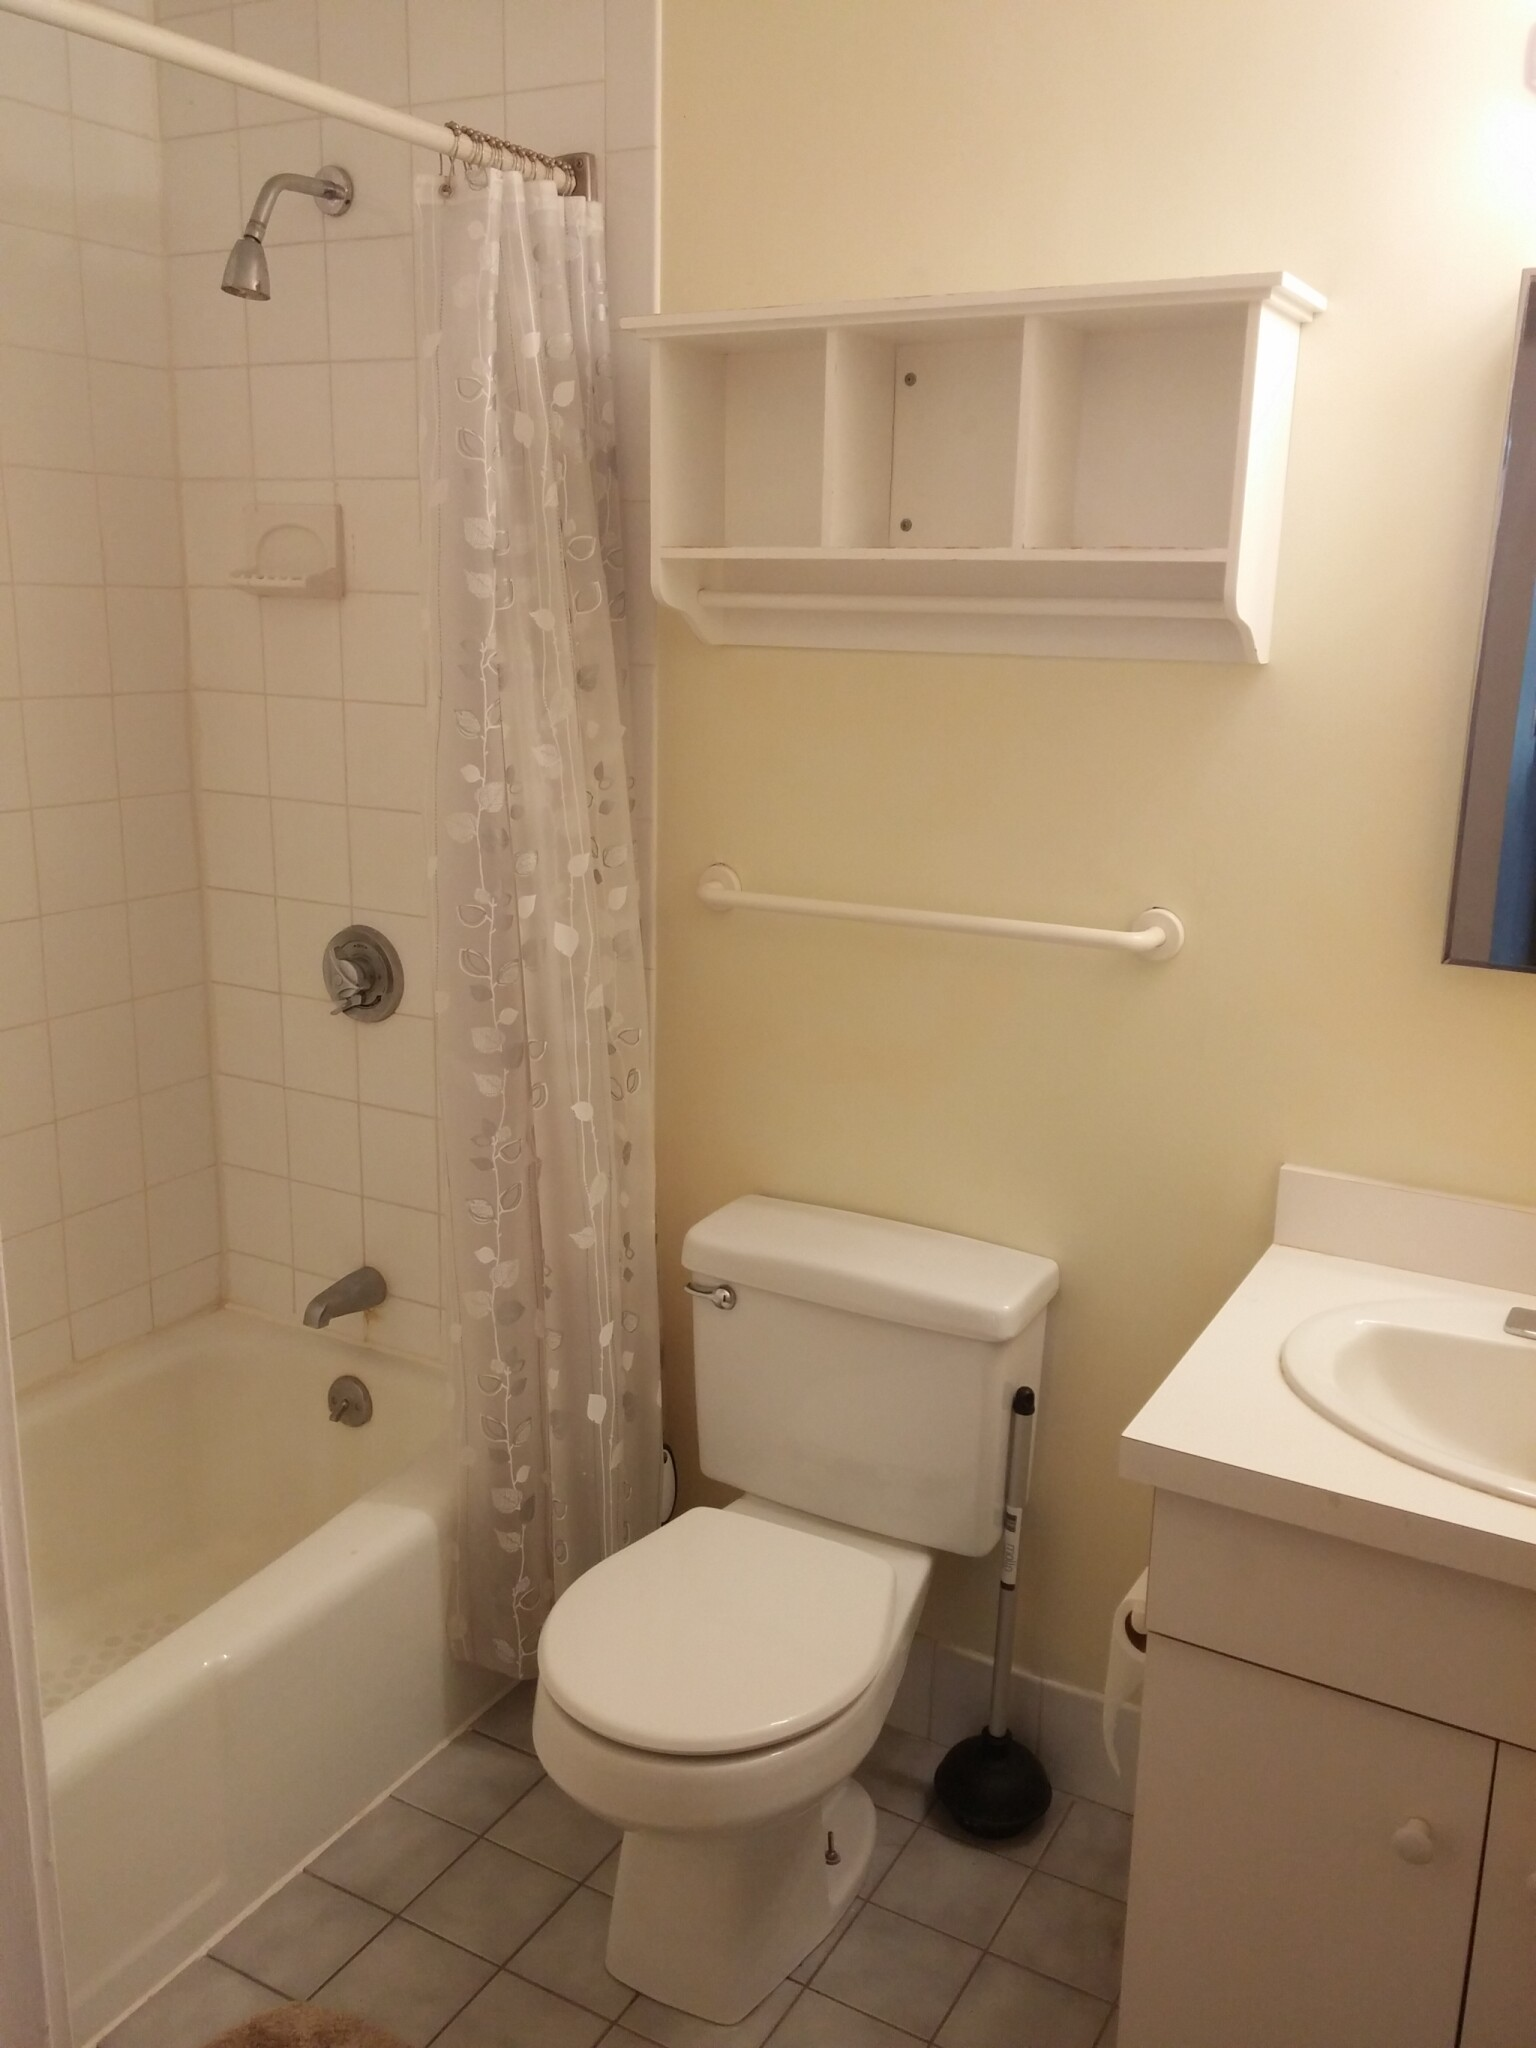 3 Beds, 1 Bath apartment in Cambridge for $3,750